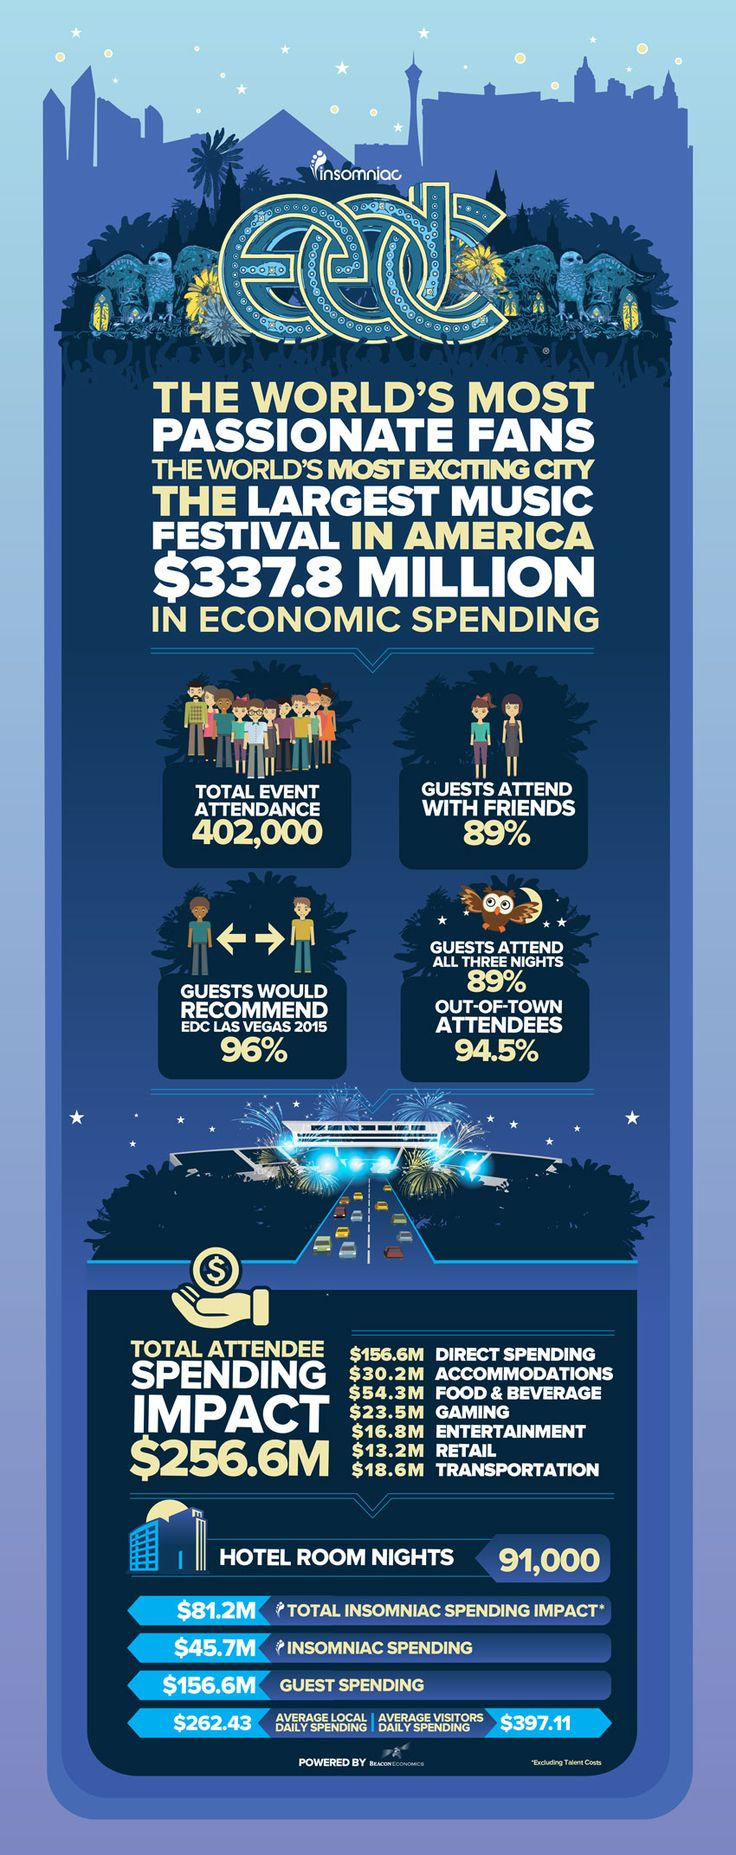 The three-day Electric Daisy Carnival (EDC), Las Vegas 2014 boosted the Clark County economy by an estimated $337.8 million, according to Beacon Economics.